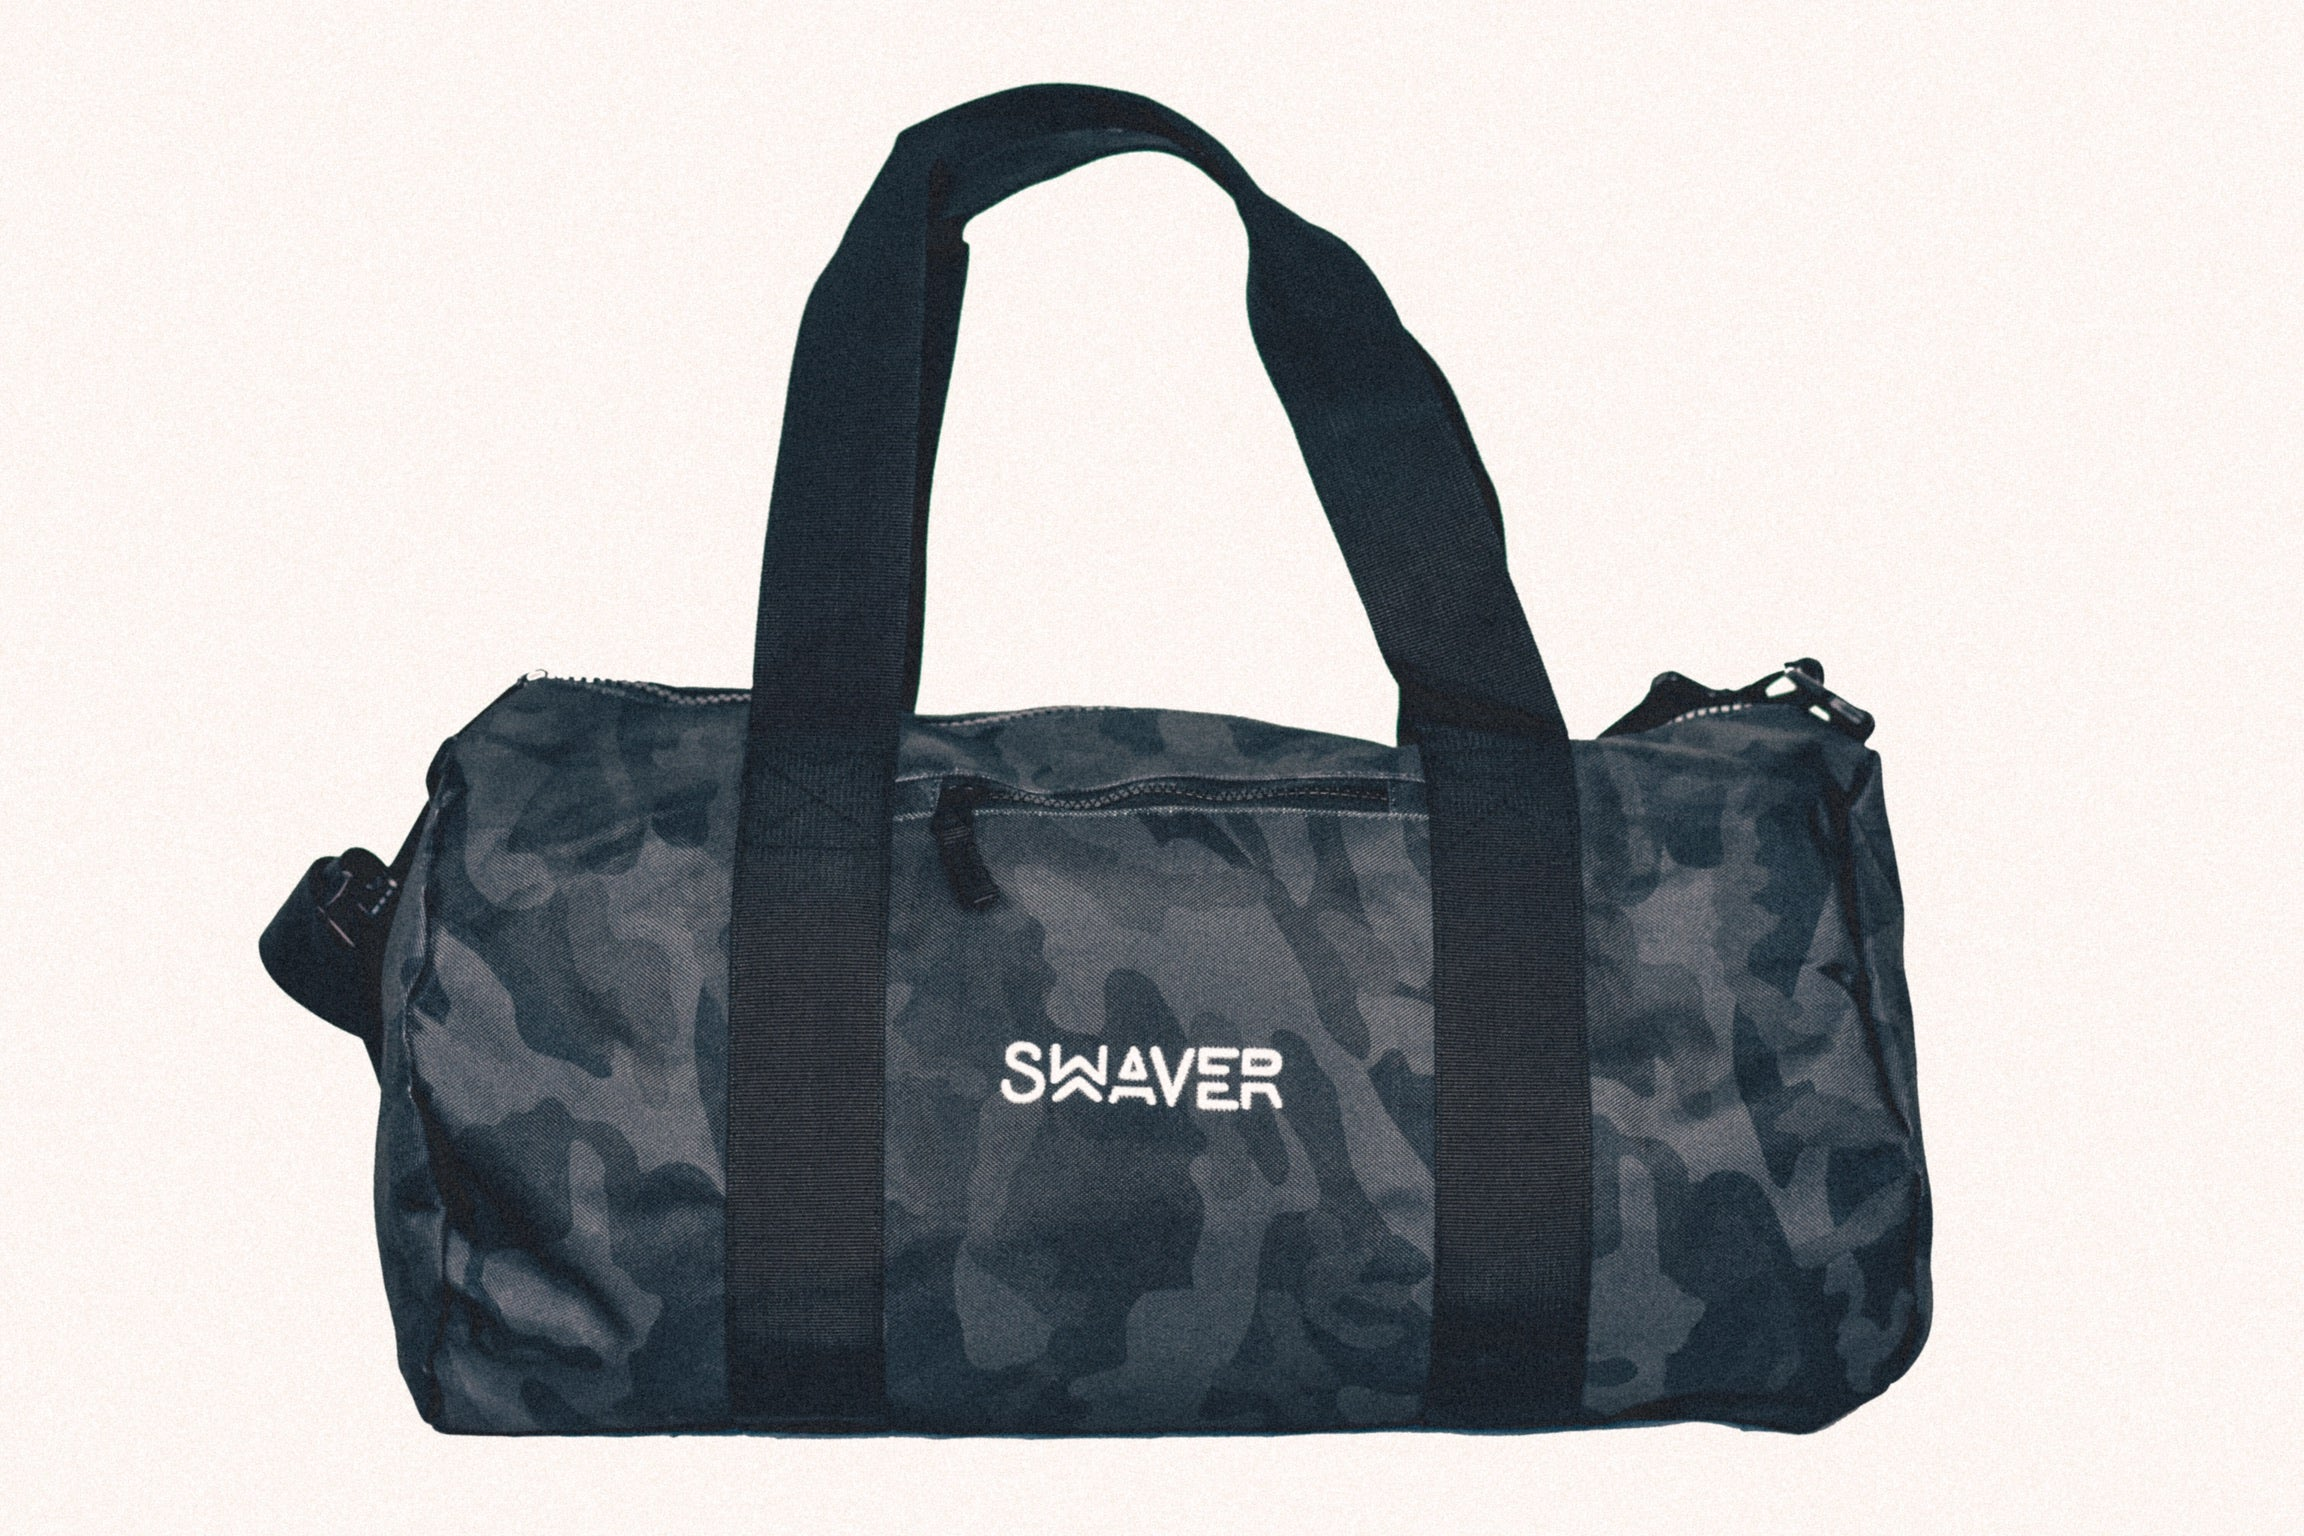 Swaver Midnight Blue Camouflage Barrel Bag - Swaver Accessories